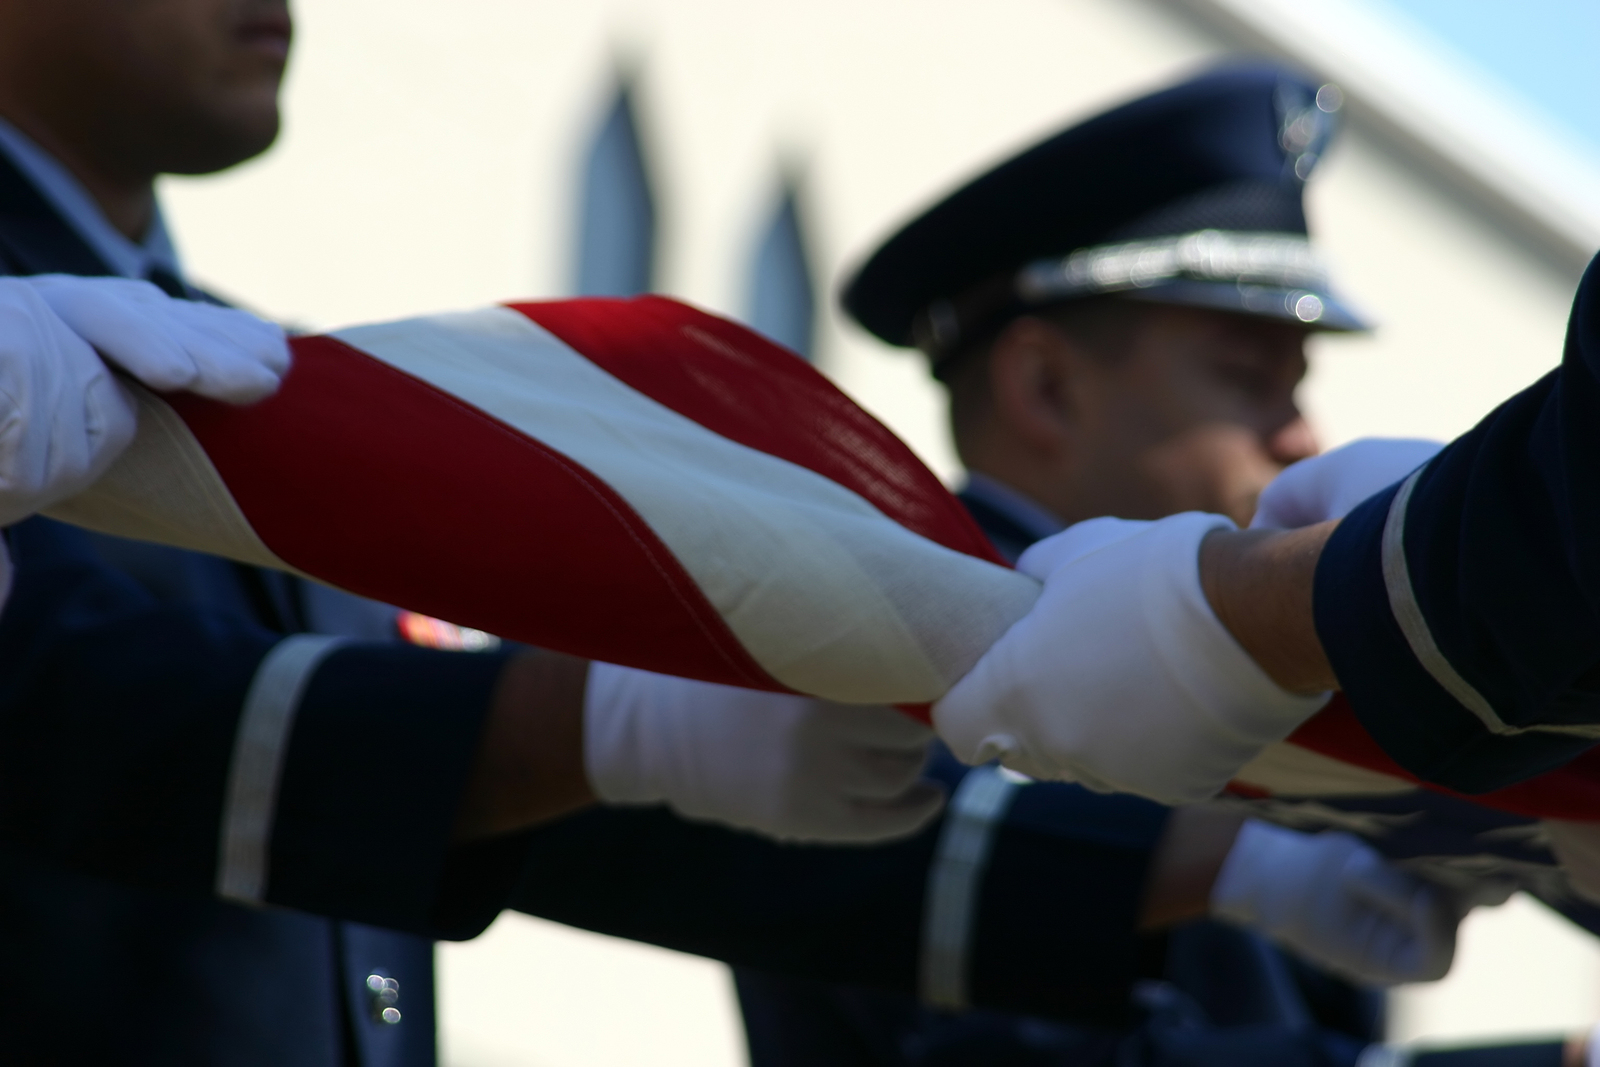 close up view of service members folding a military flag at a military memorial service